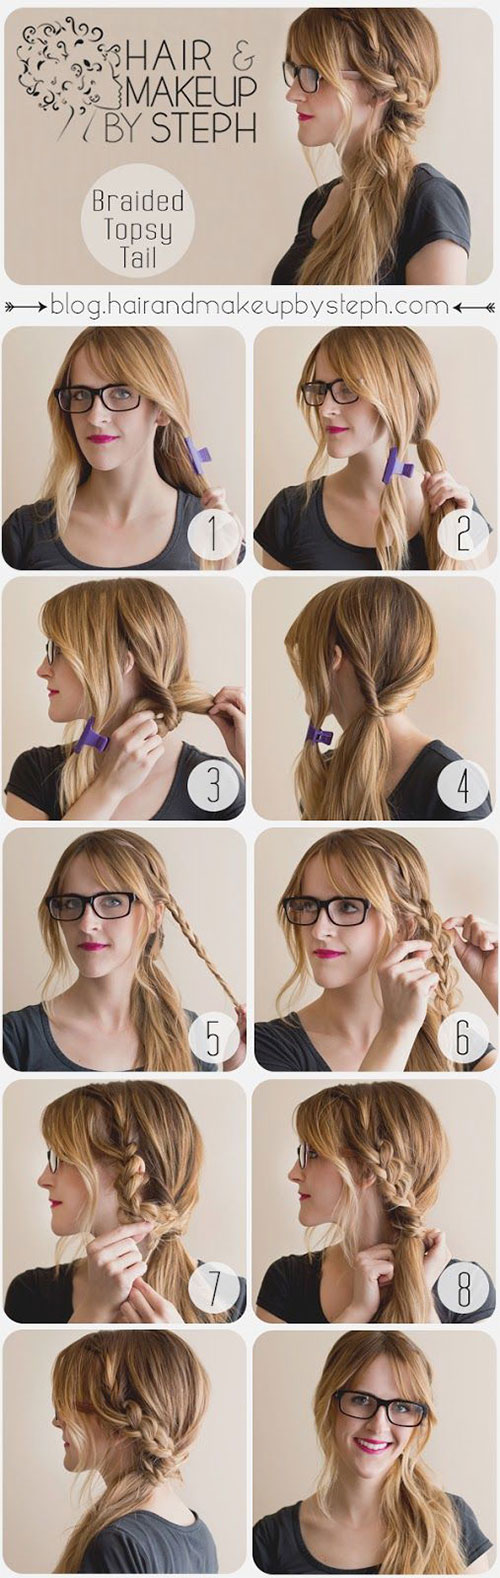 Braided Topsy Tail Tutorial